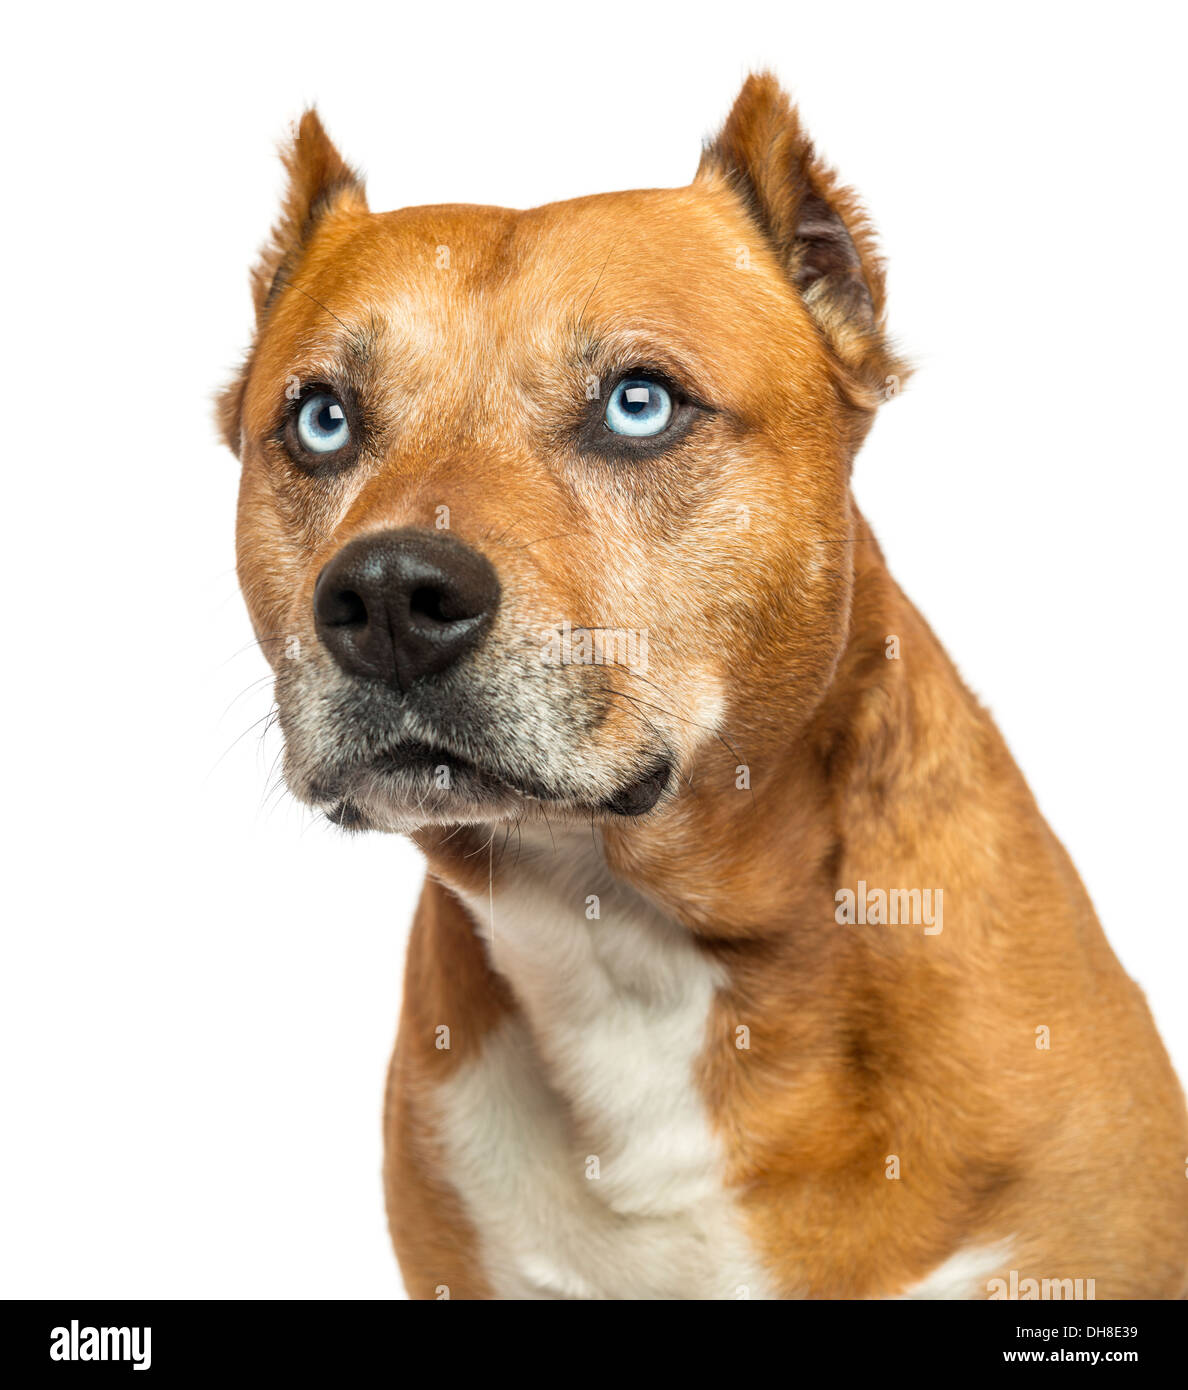 Close-up of an American Staffordshire Terrier against white background - Stock Image